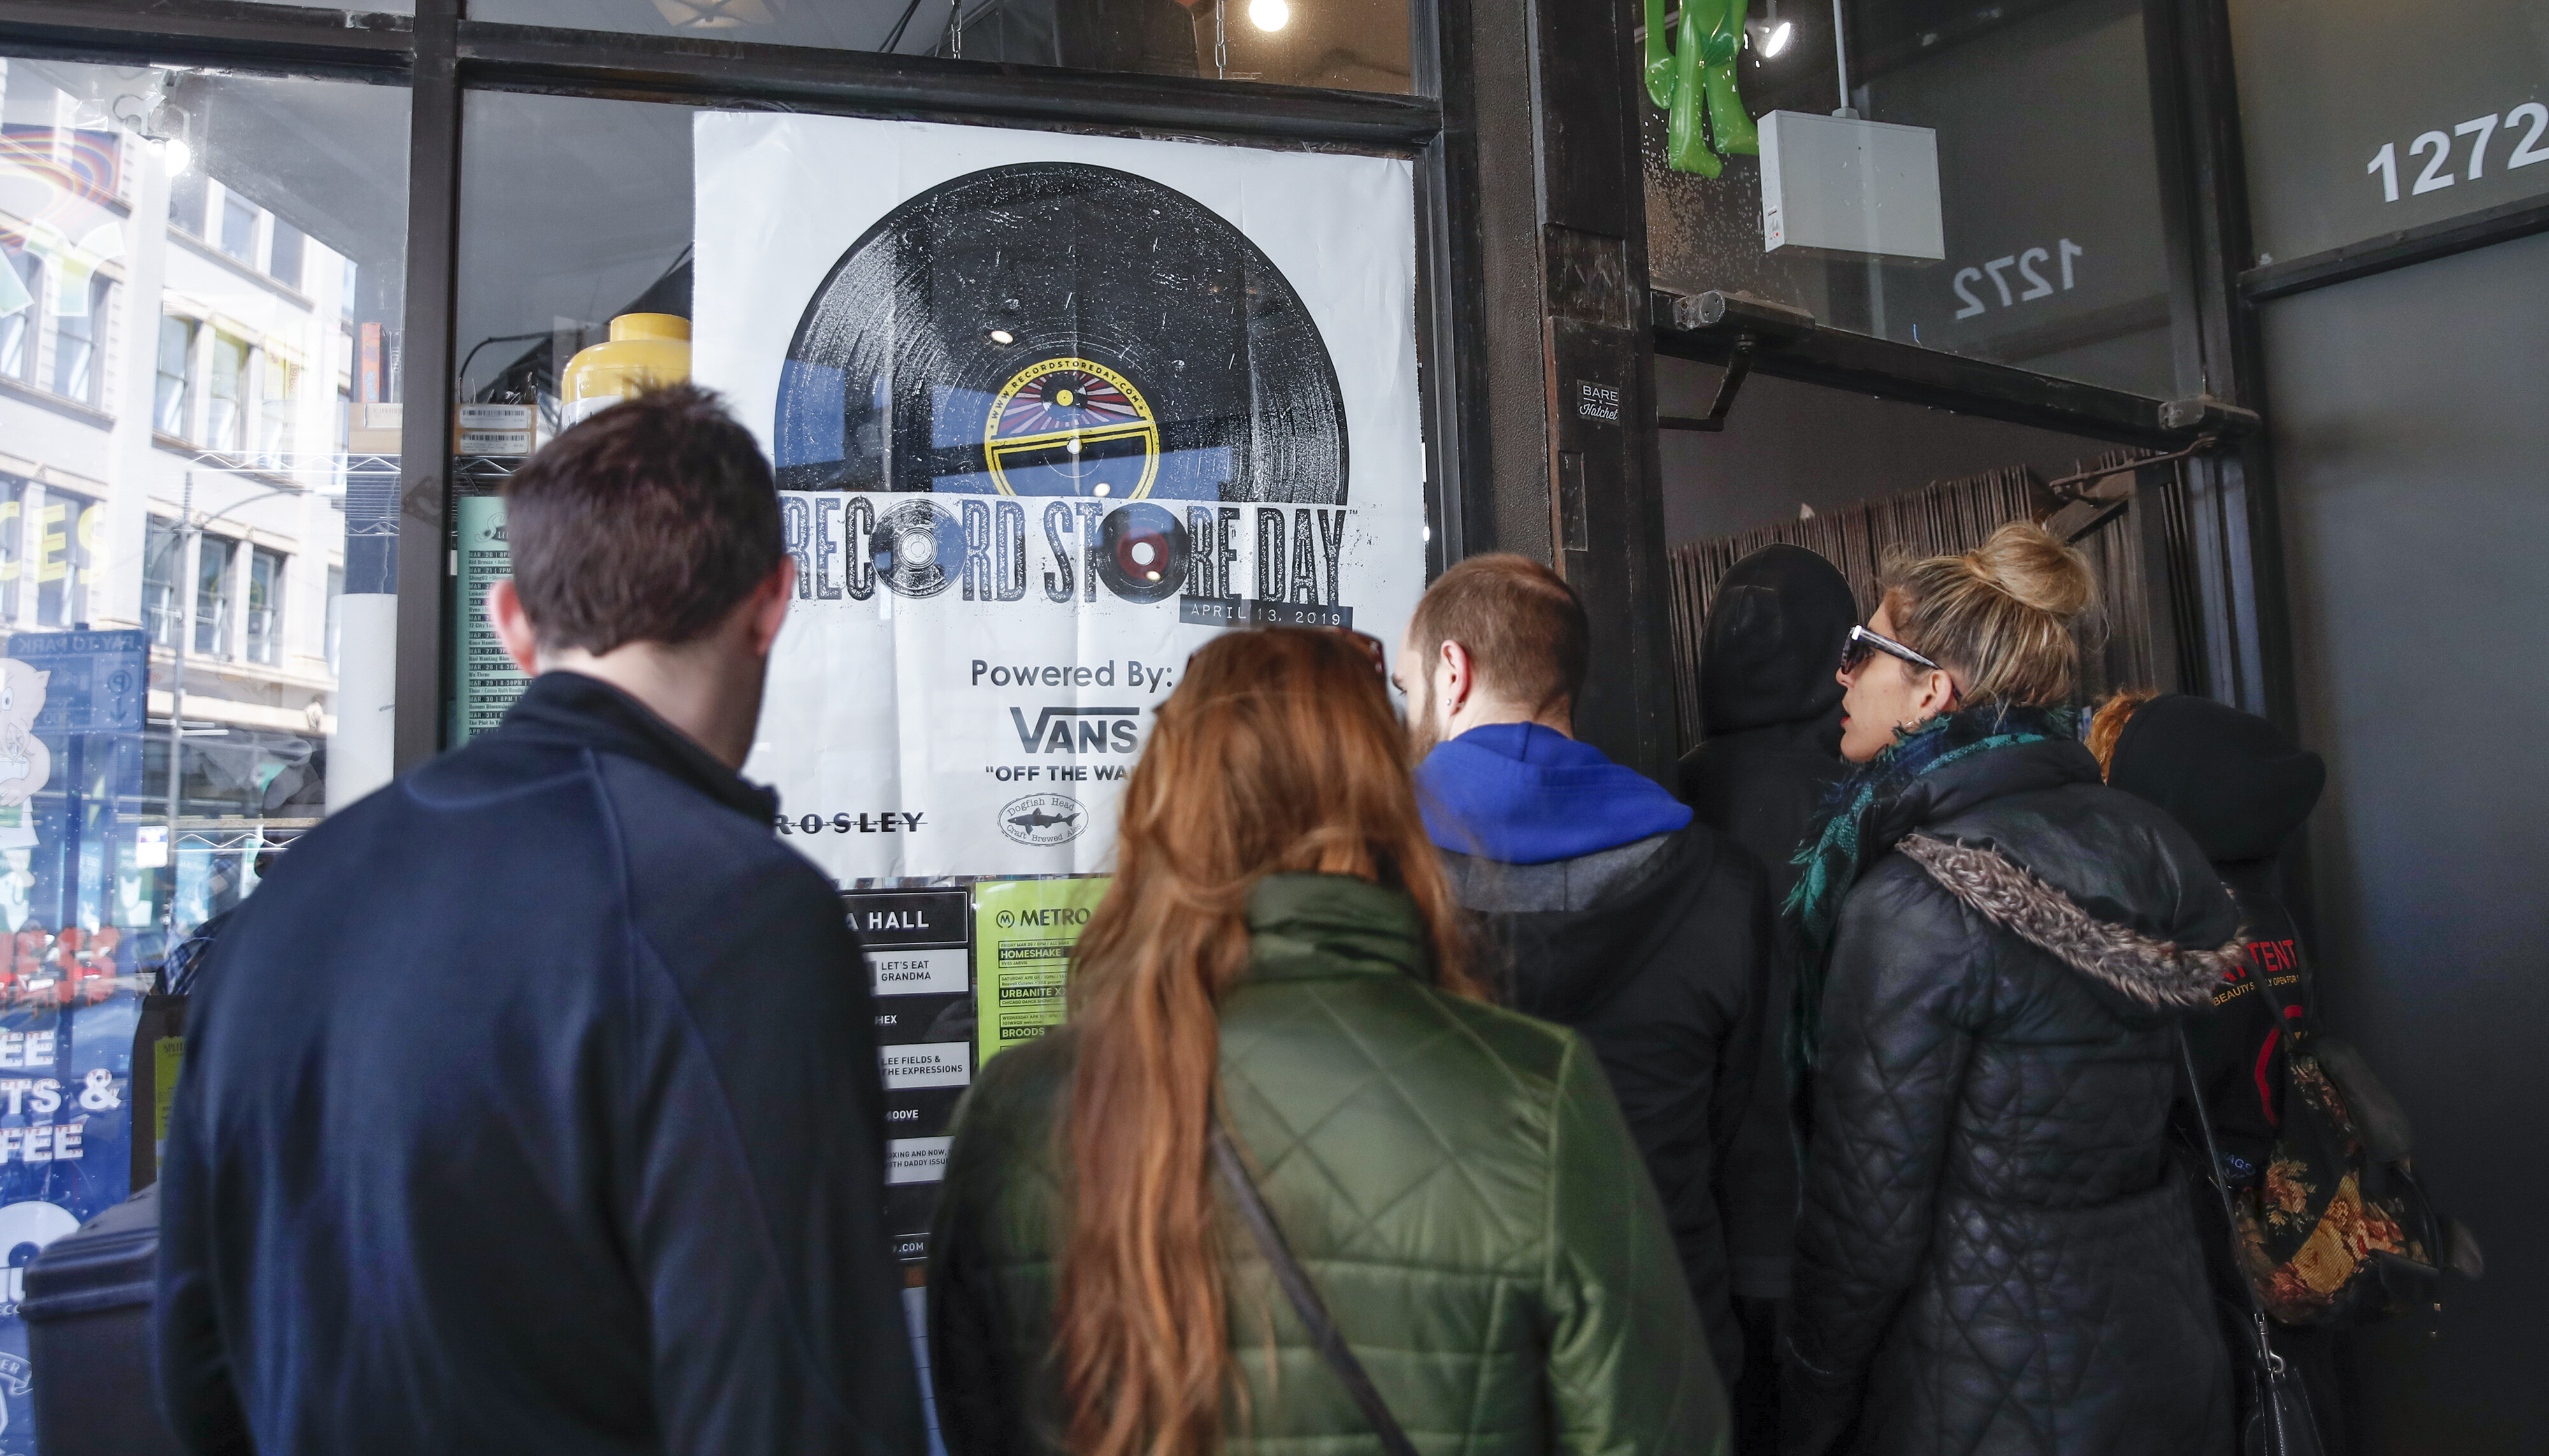 Record Store Day offers a sign of hope for businesses working on their pandemic rebound